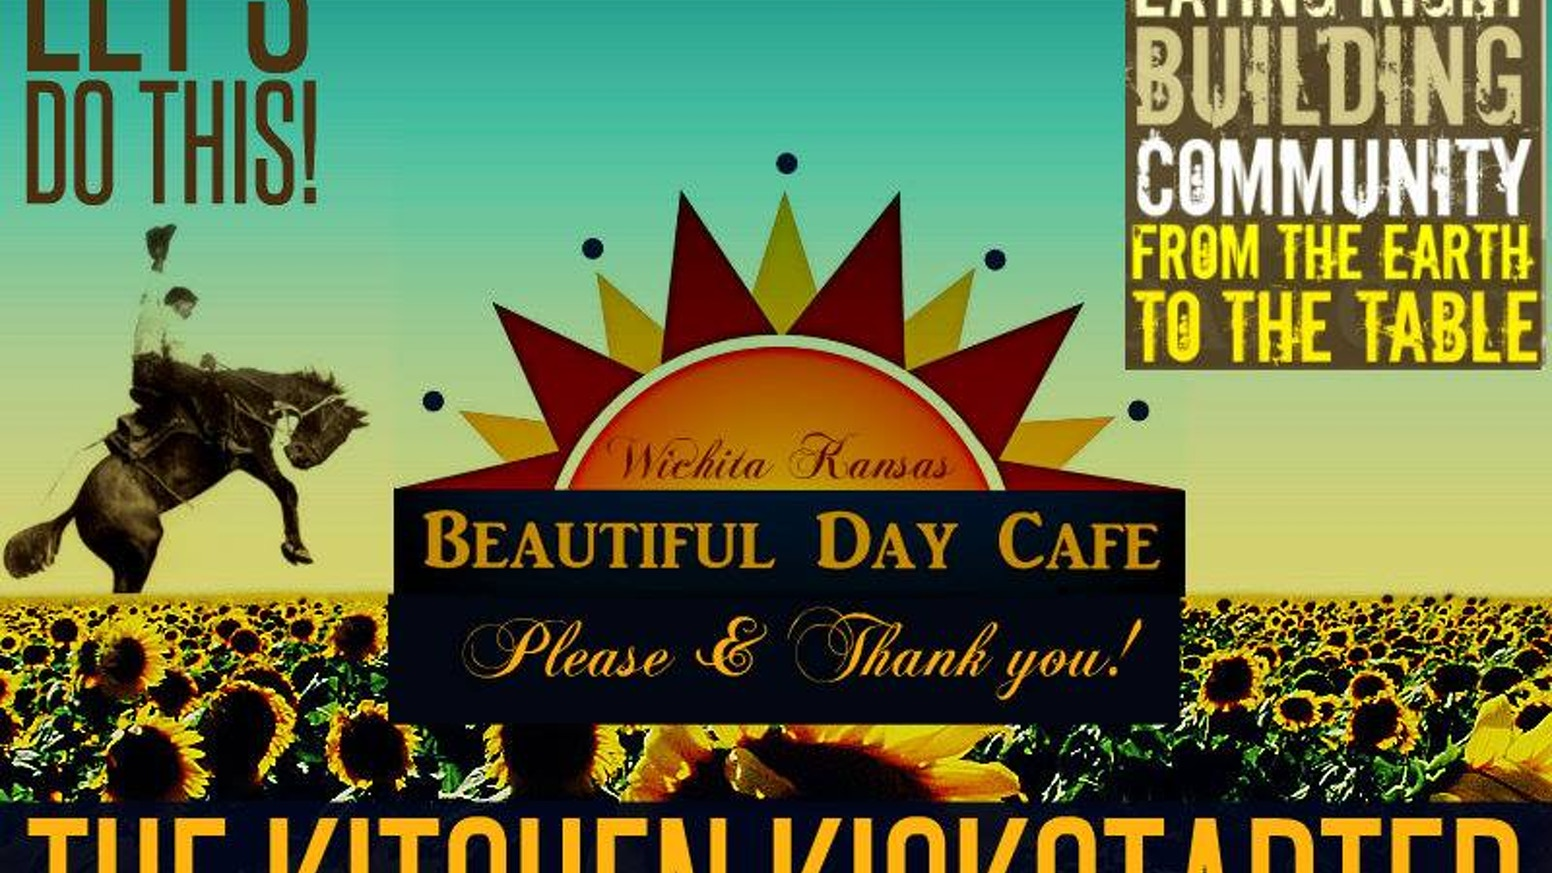 Beautiful Day Cafe will feature fresh locally sourced foods that are full of flavor and feed your soul as well as your body.